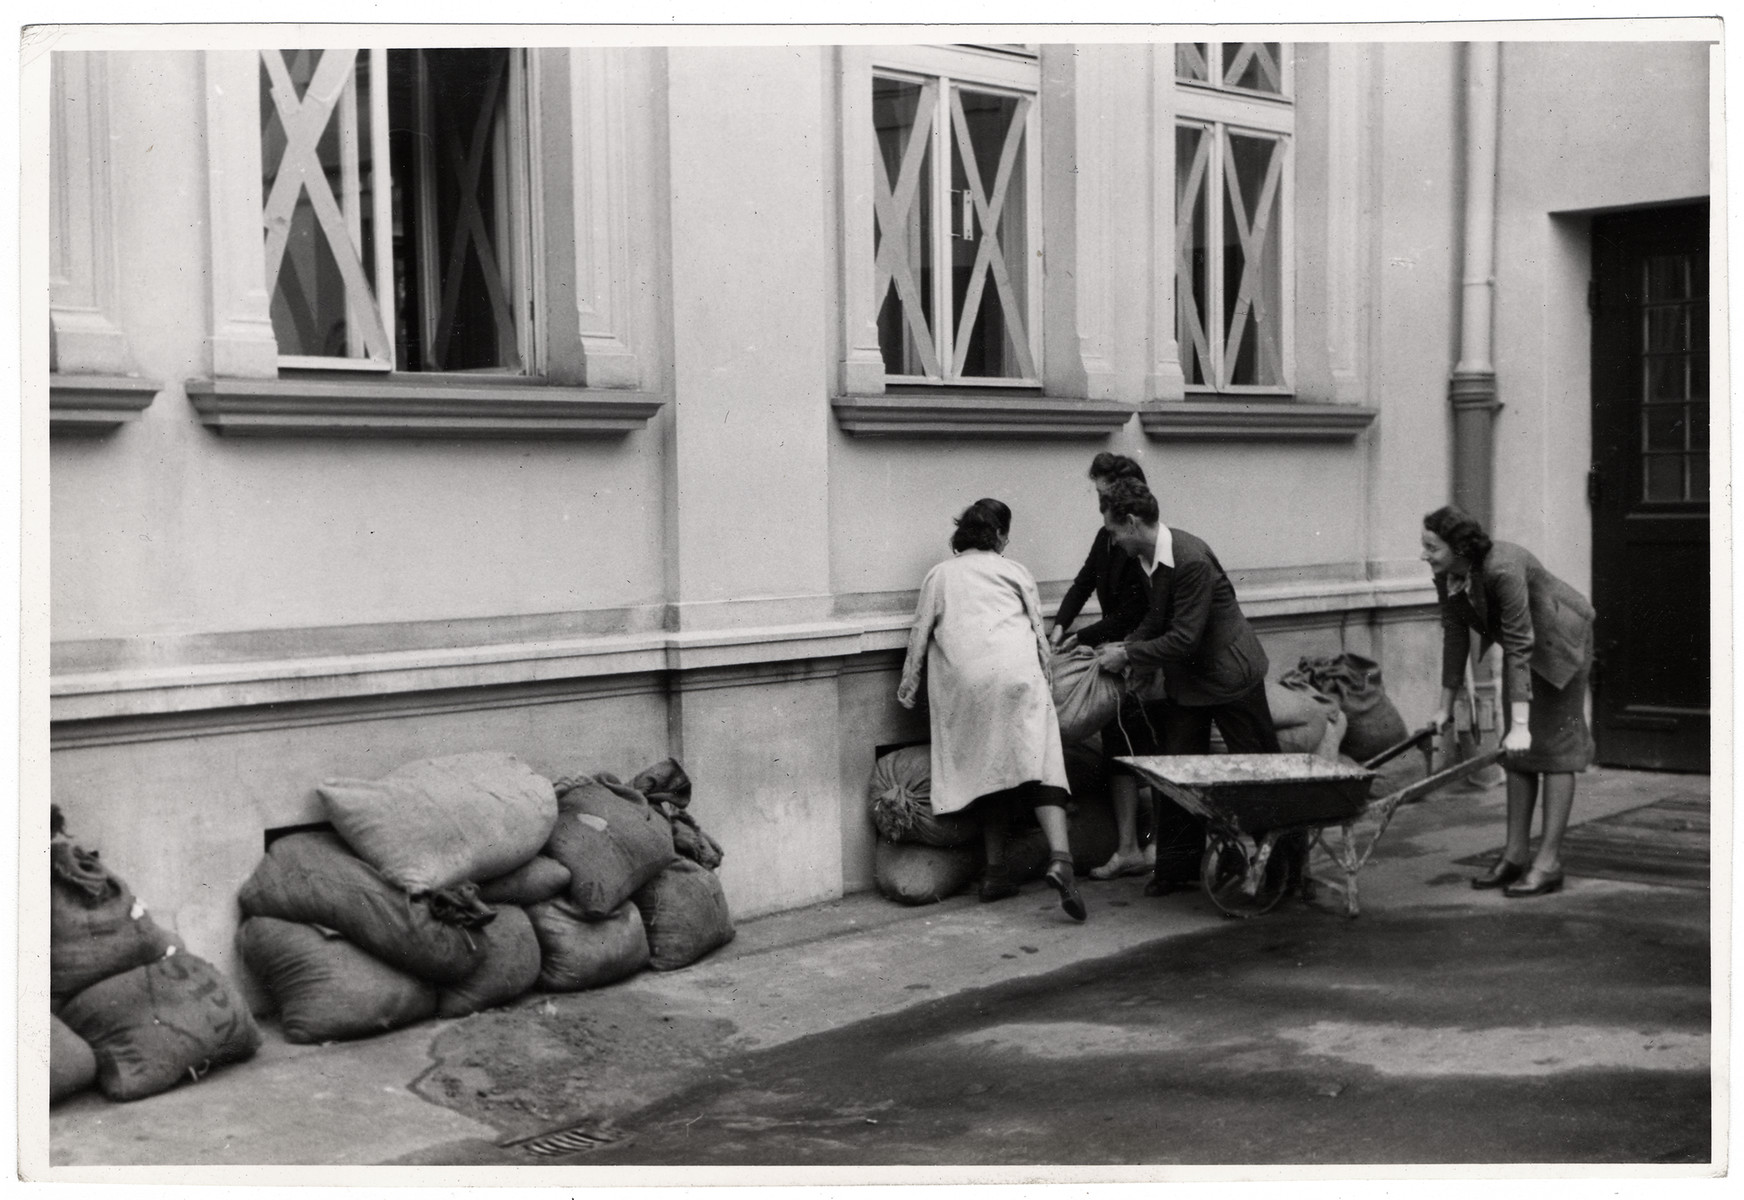 Men and women pile sand bags outside on the base of the American consulate in Warsaw to protect it from German bombs.